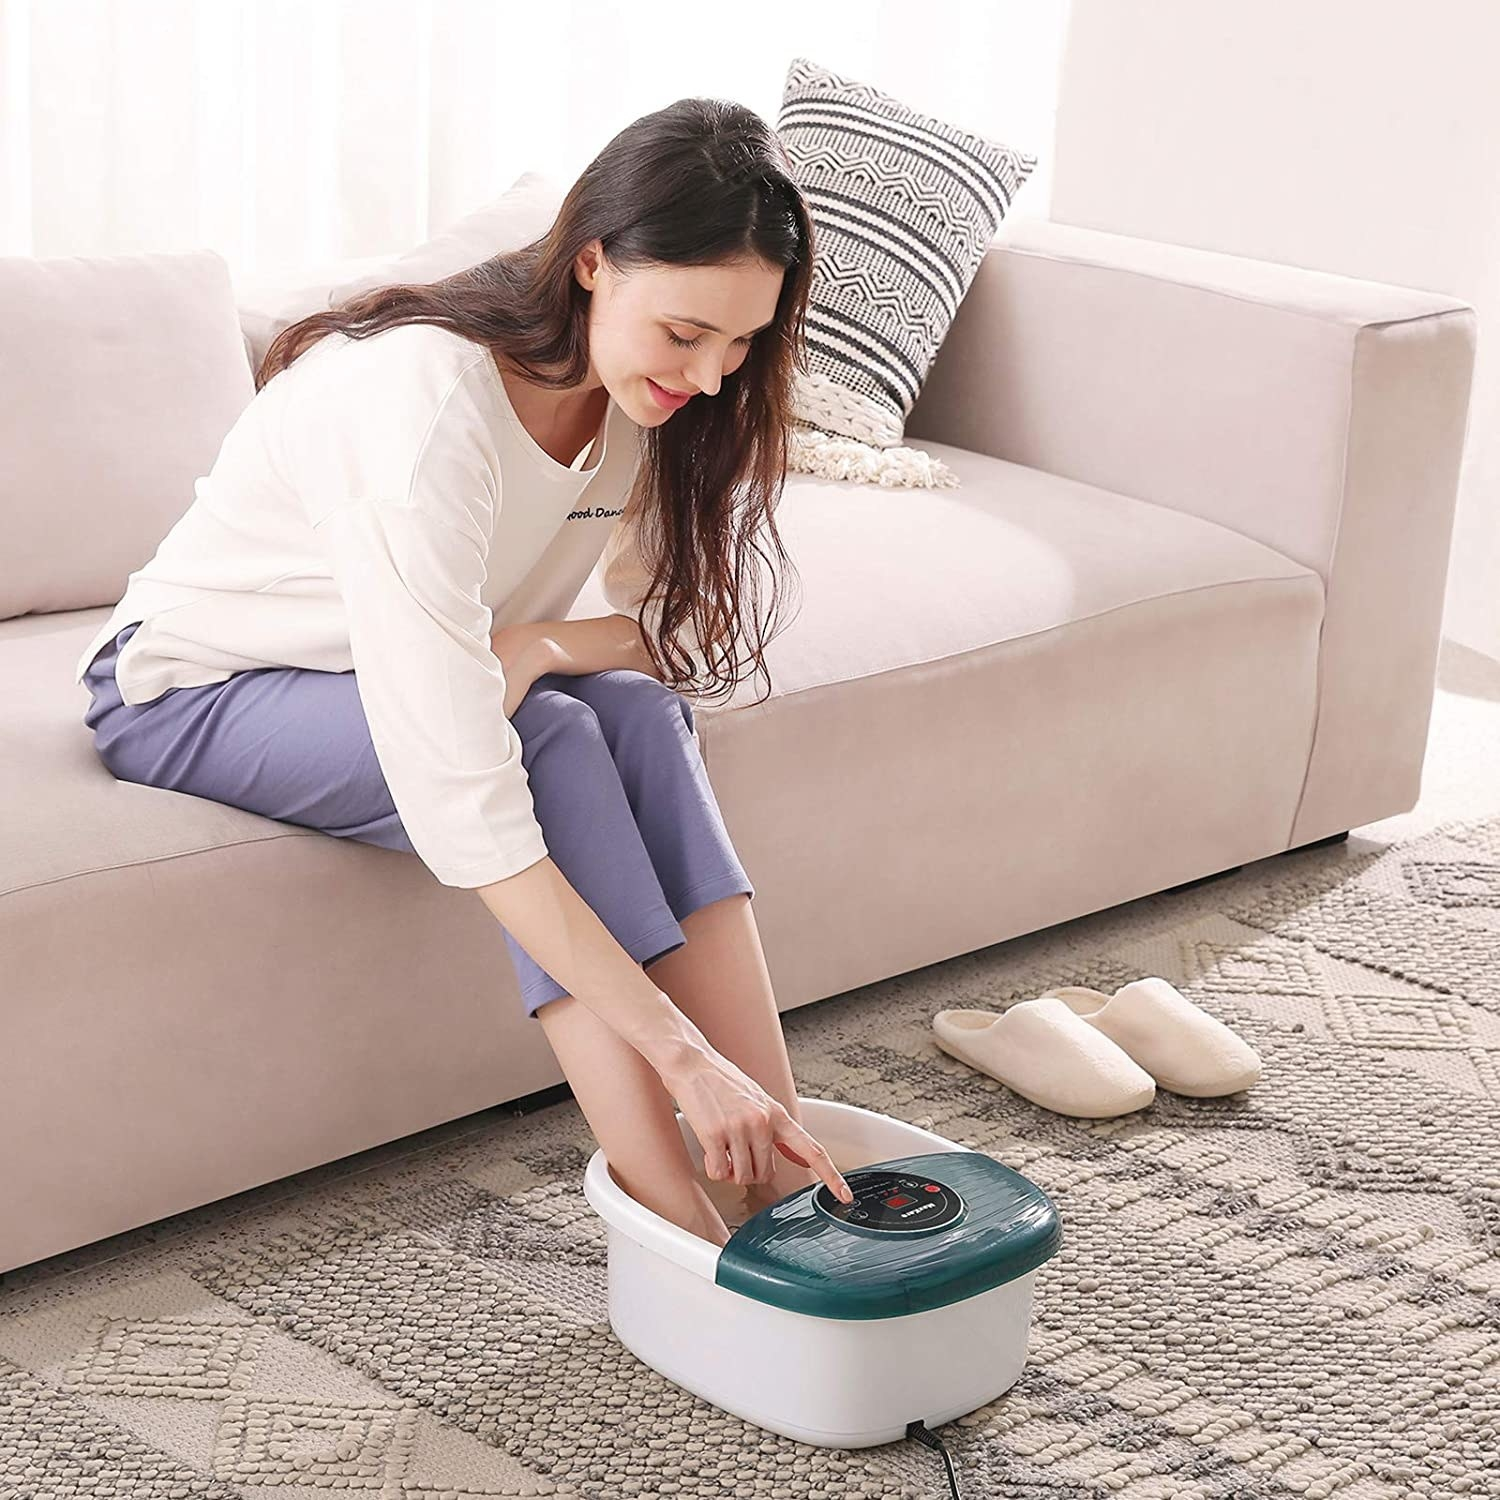 Model presses button on top of green and white foot bath massager while sitting on a couch